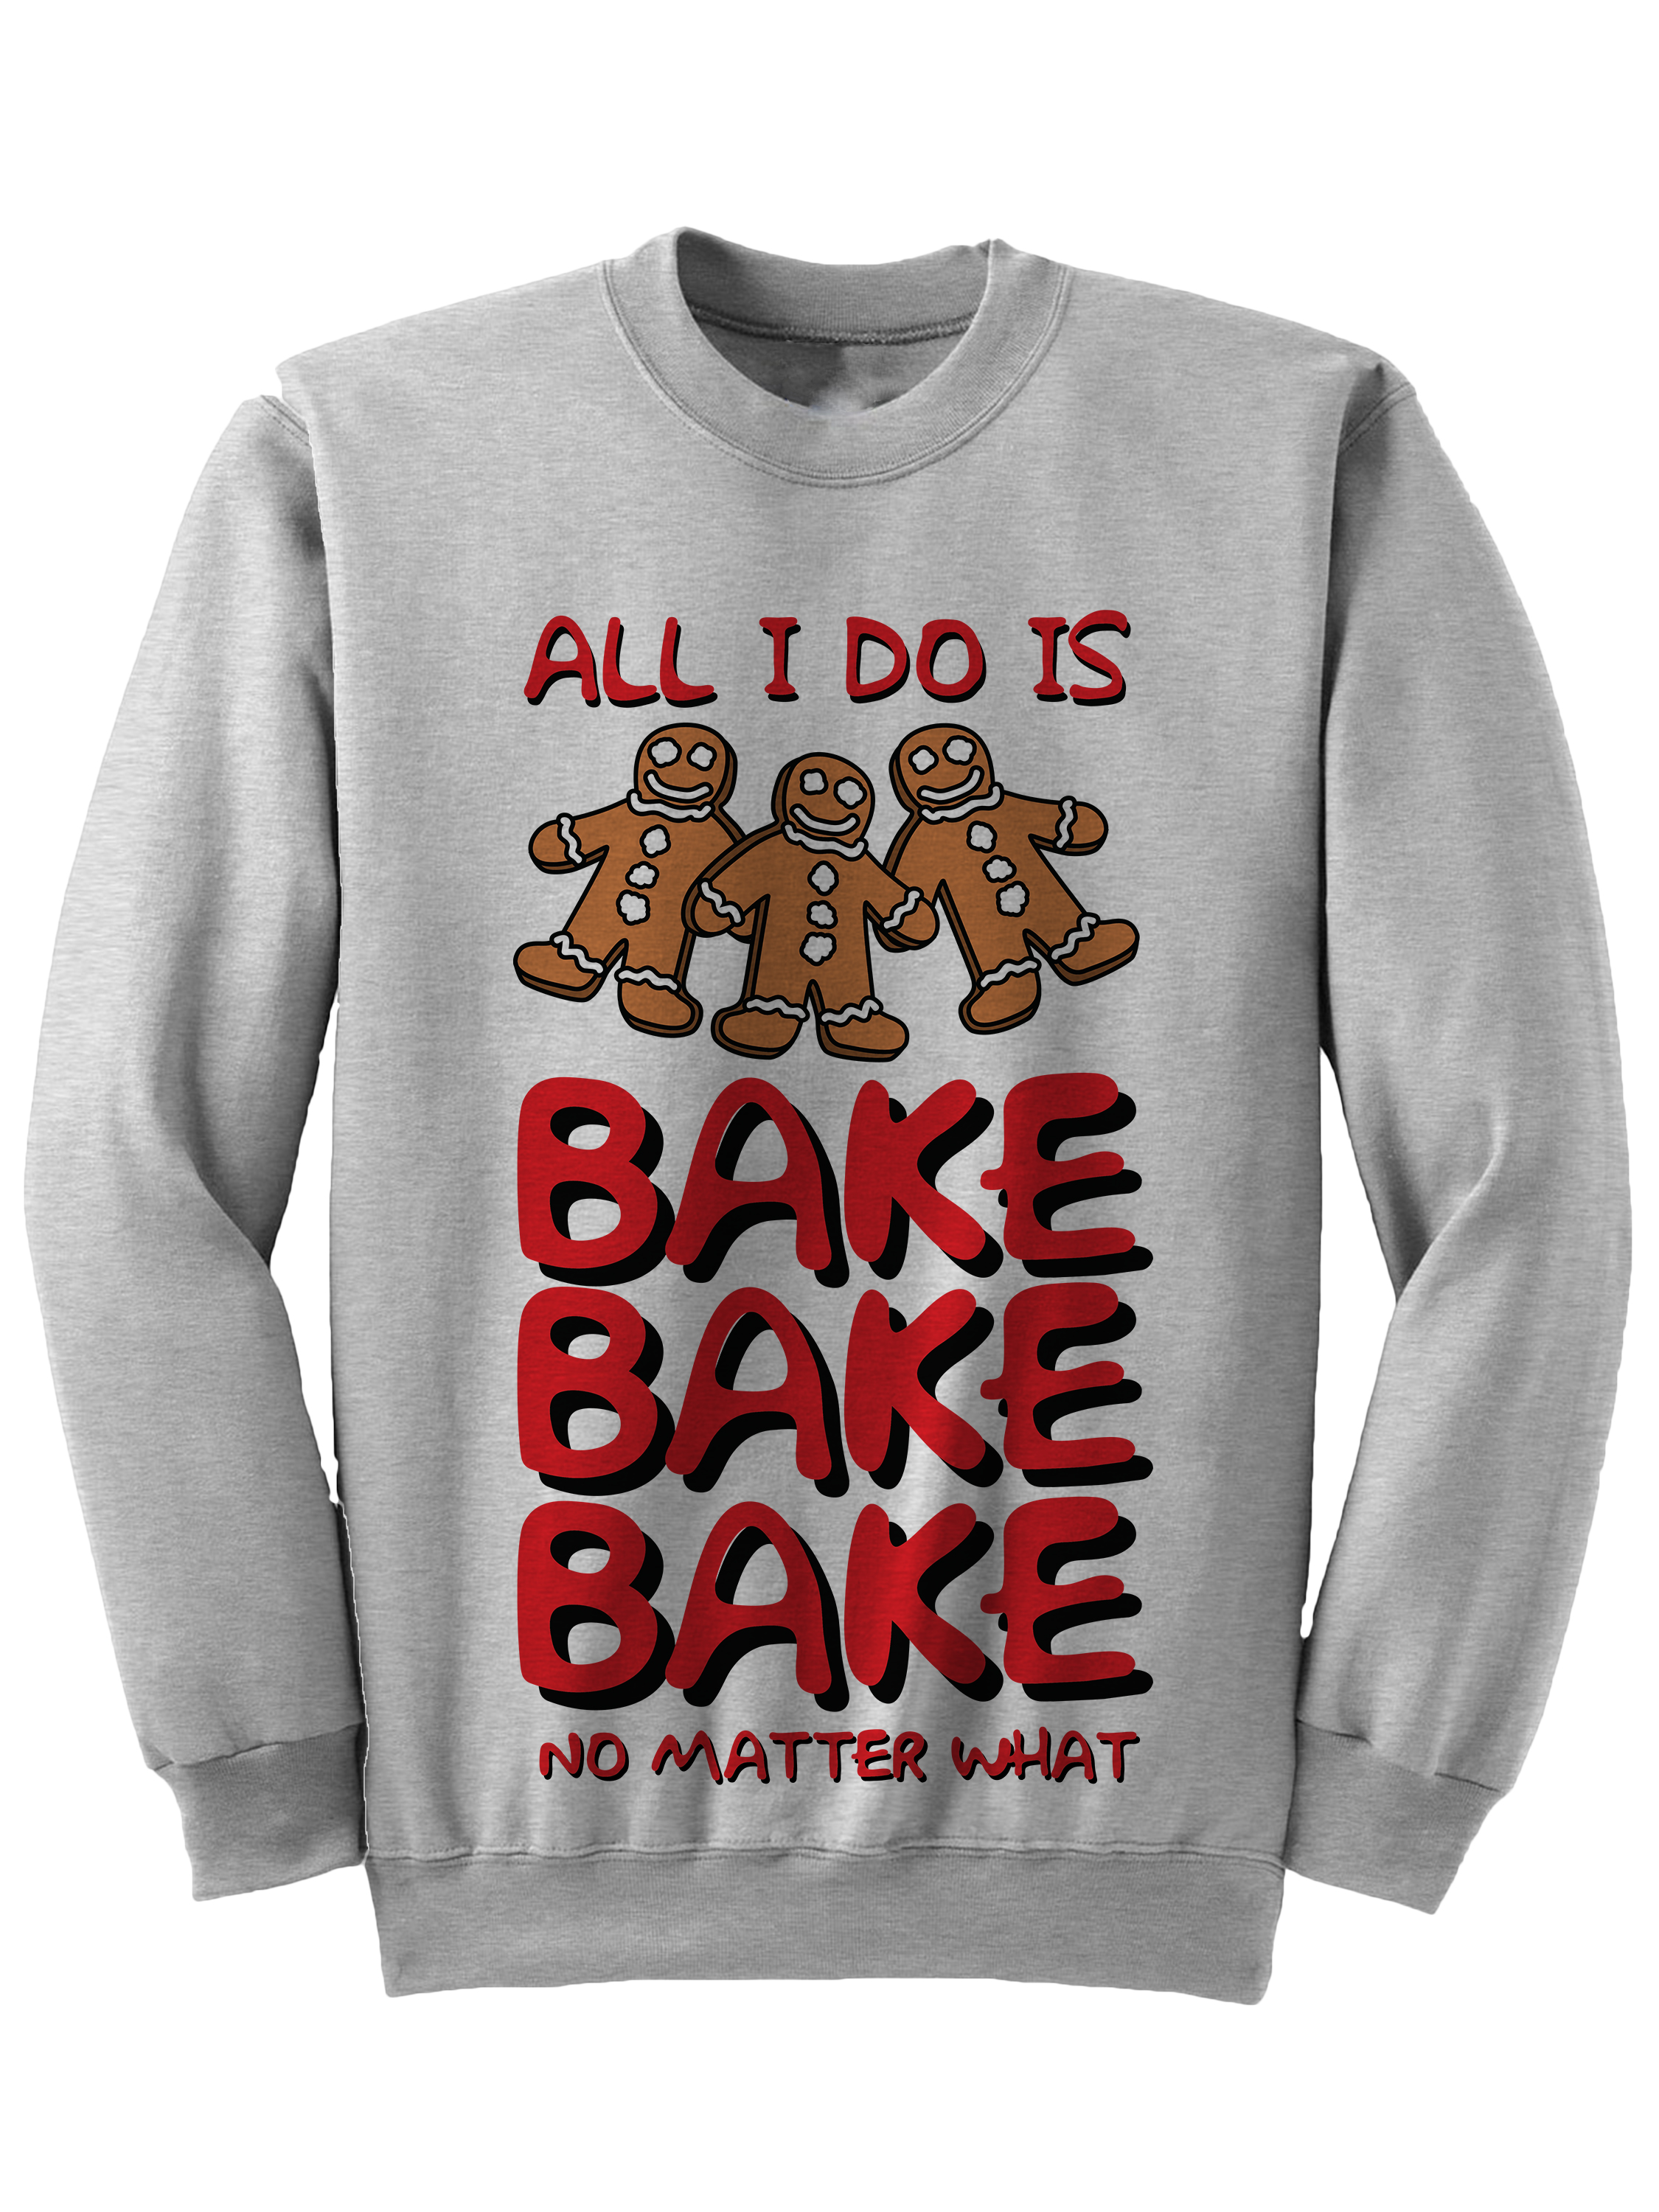 0da87ad5241 ALL I DO IS BAKE CHRISTMAS SWEATER FUNNY GIFT IDEAS LADIES TOPS MENS FASHION  PLUS SIZE